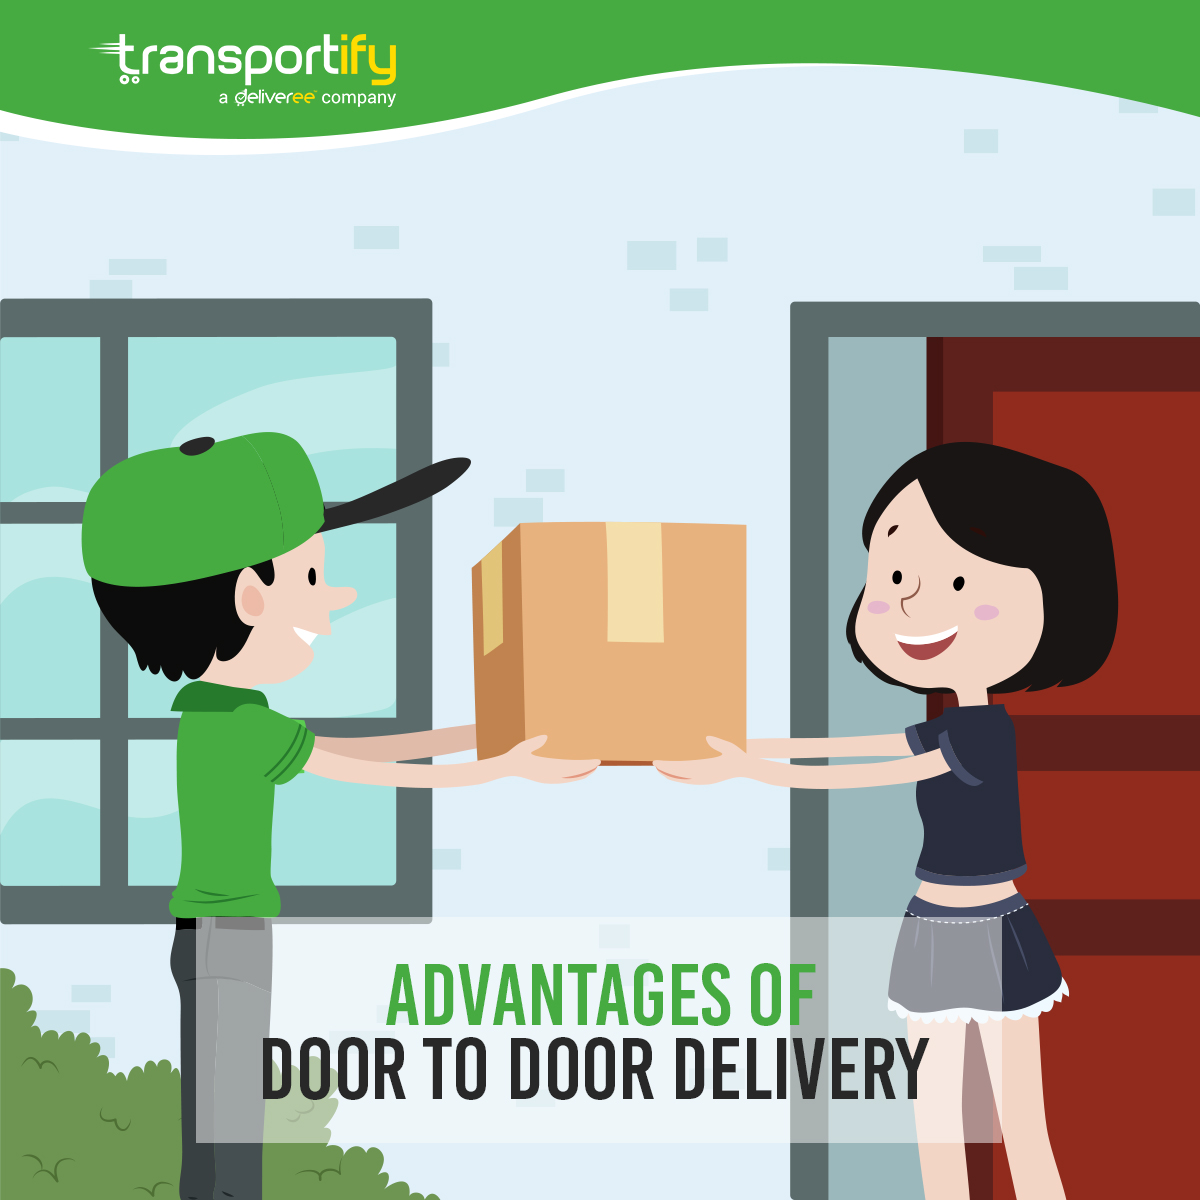 transportify, door to door delivery philippines, on demand delivery app, pick up and deliver courier, track package, delivery driver partners